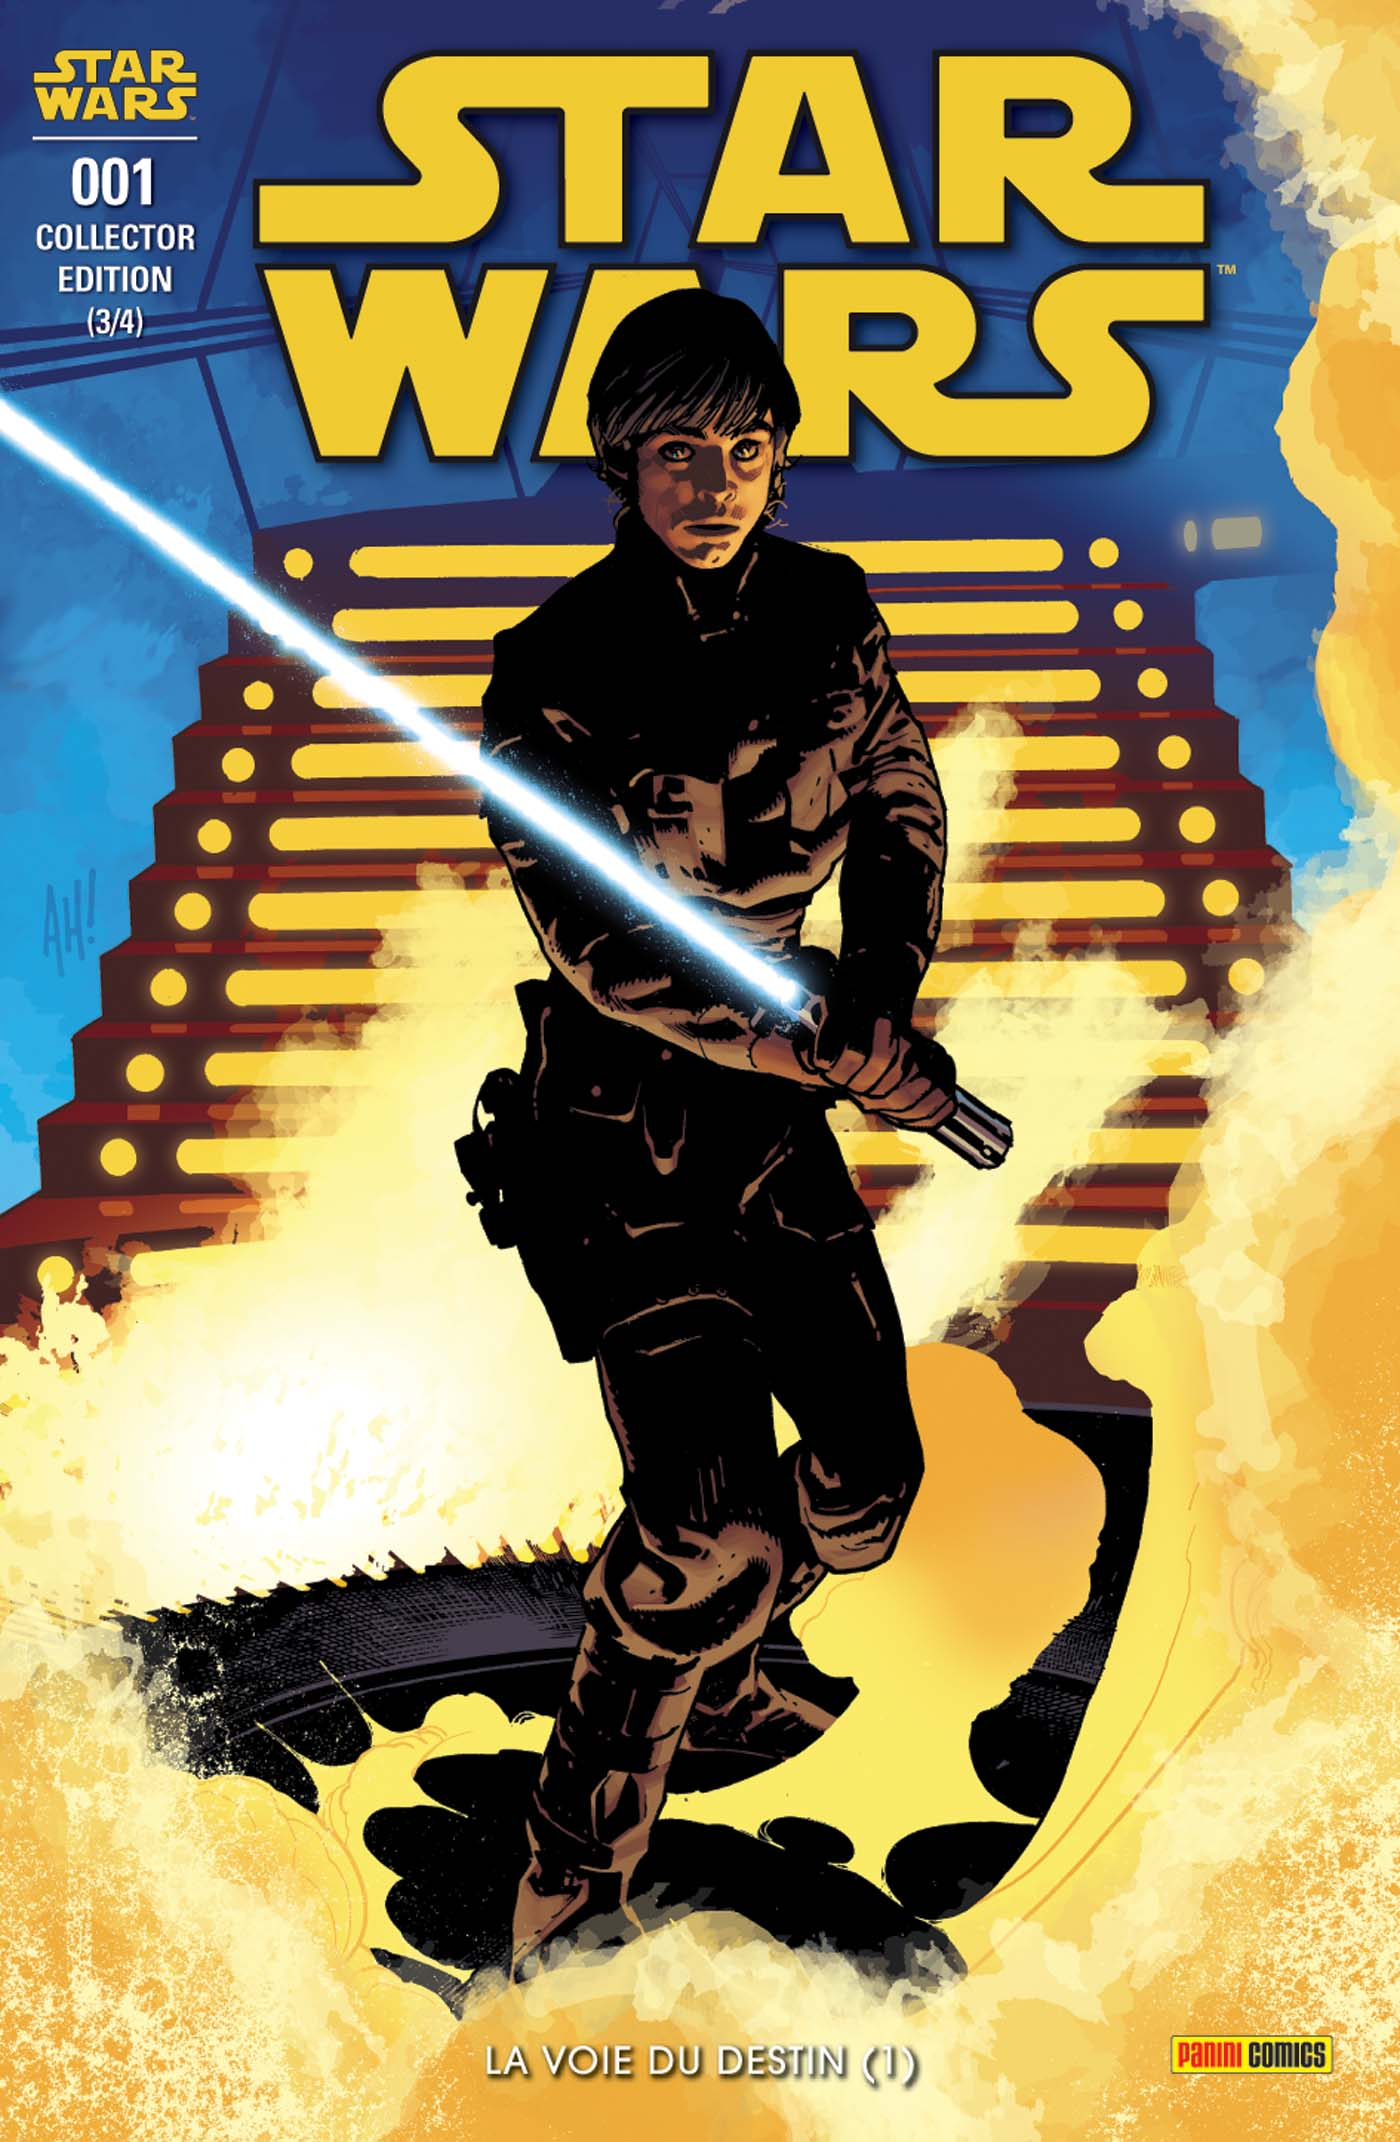 Star Wars 1 - Couverture collector 3/4